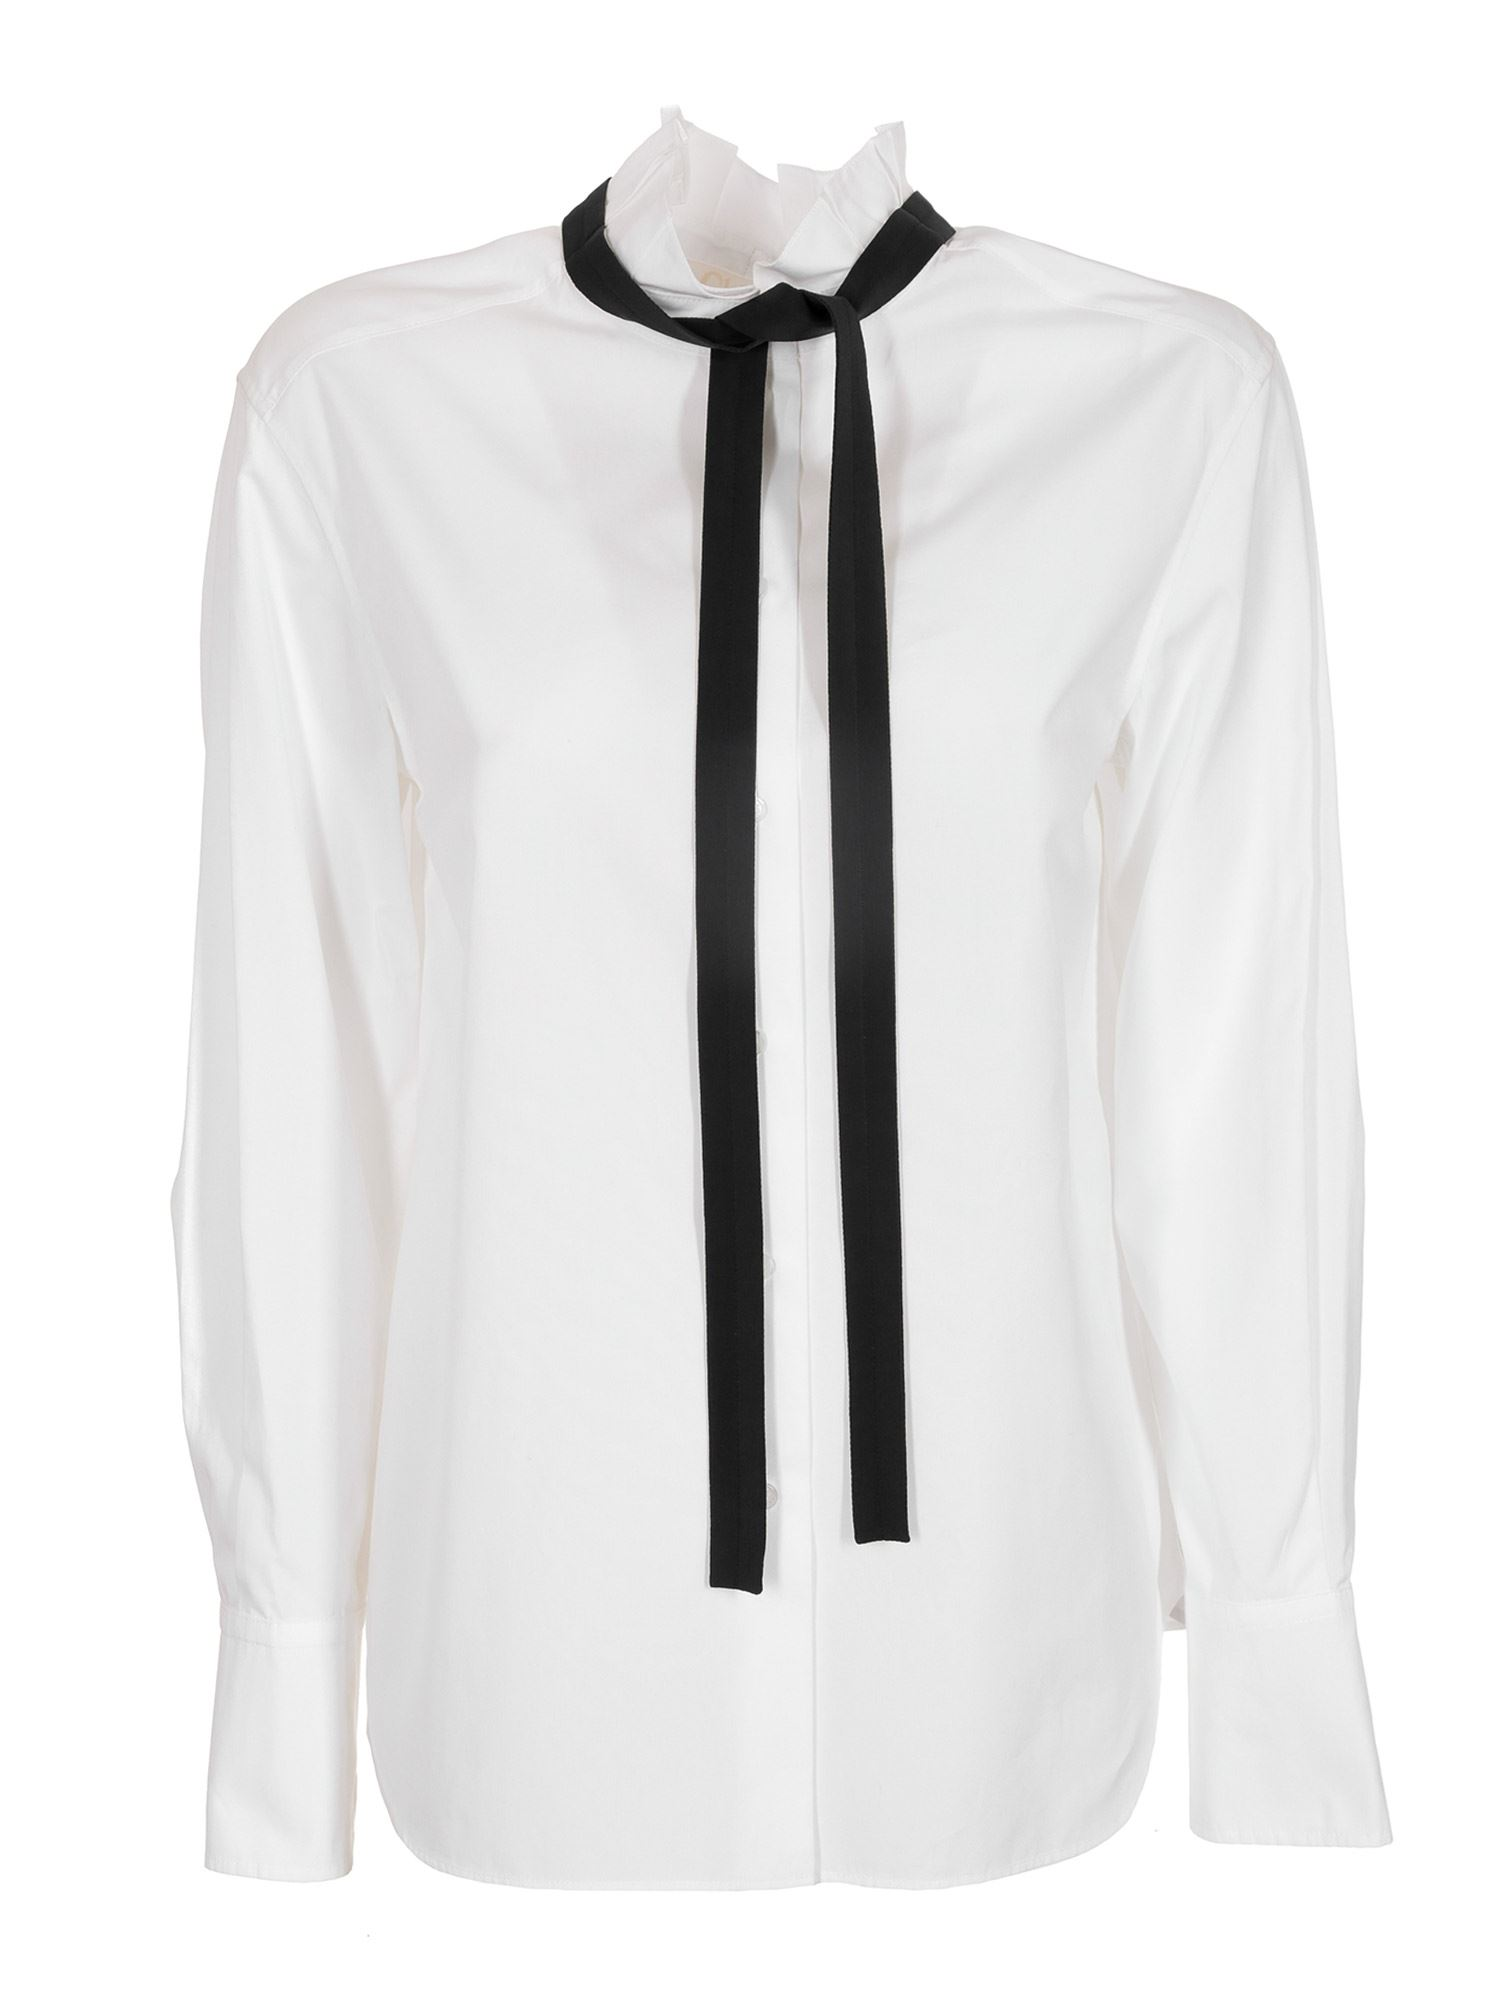 Chloé REMOVABLE LAVALLIÈRE HIGH NECK BLOUSE